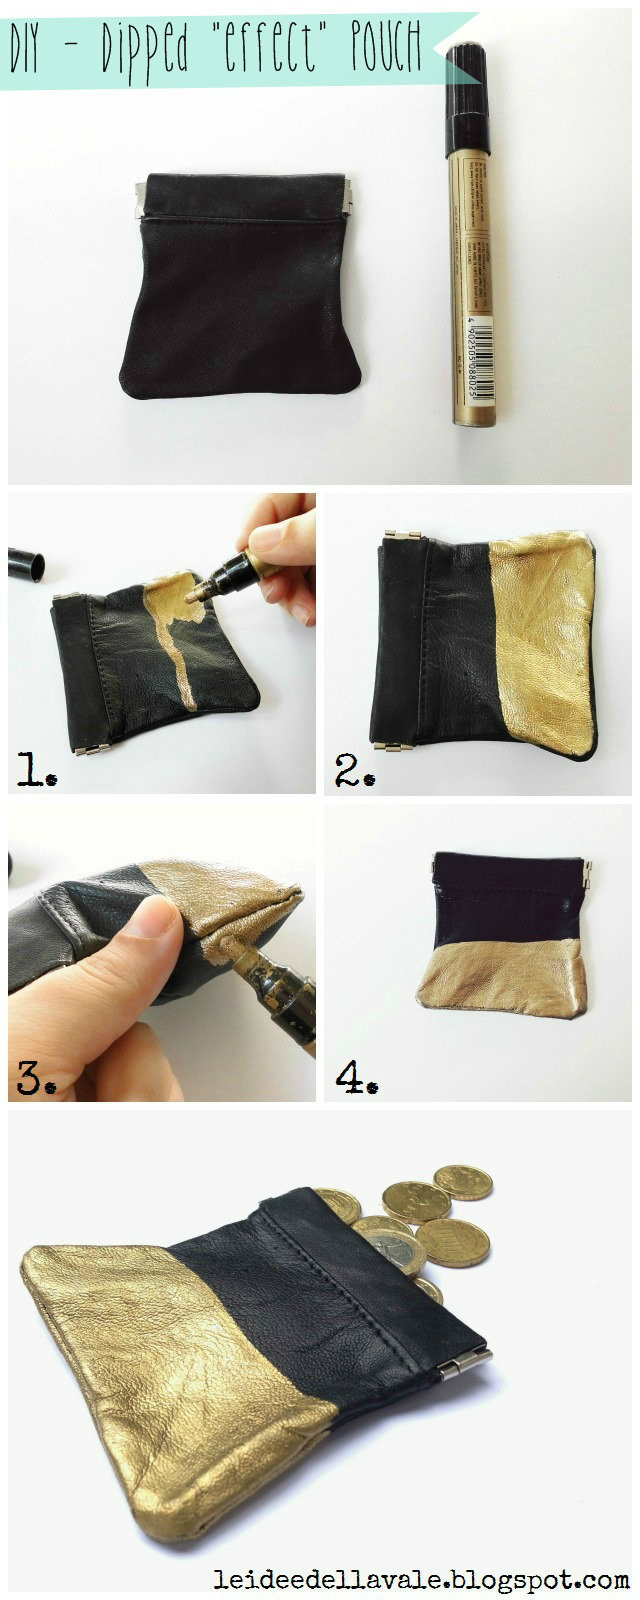 Dipped effect pouch Foto Tutorial